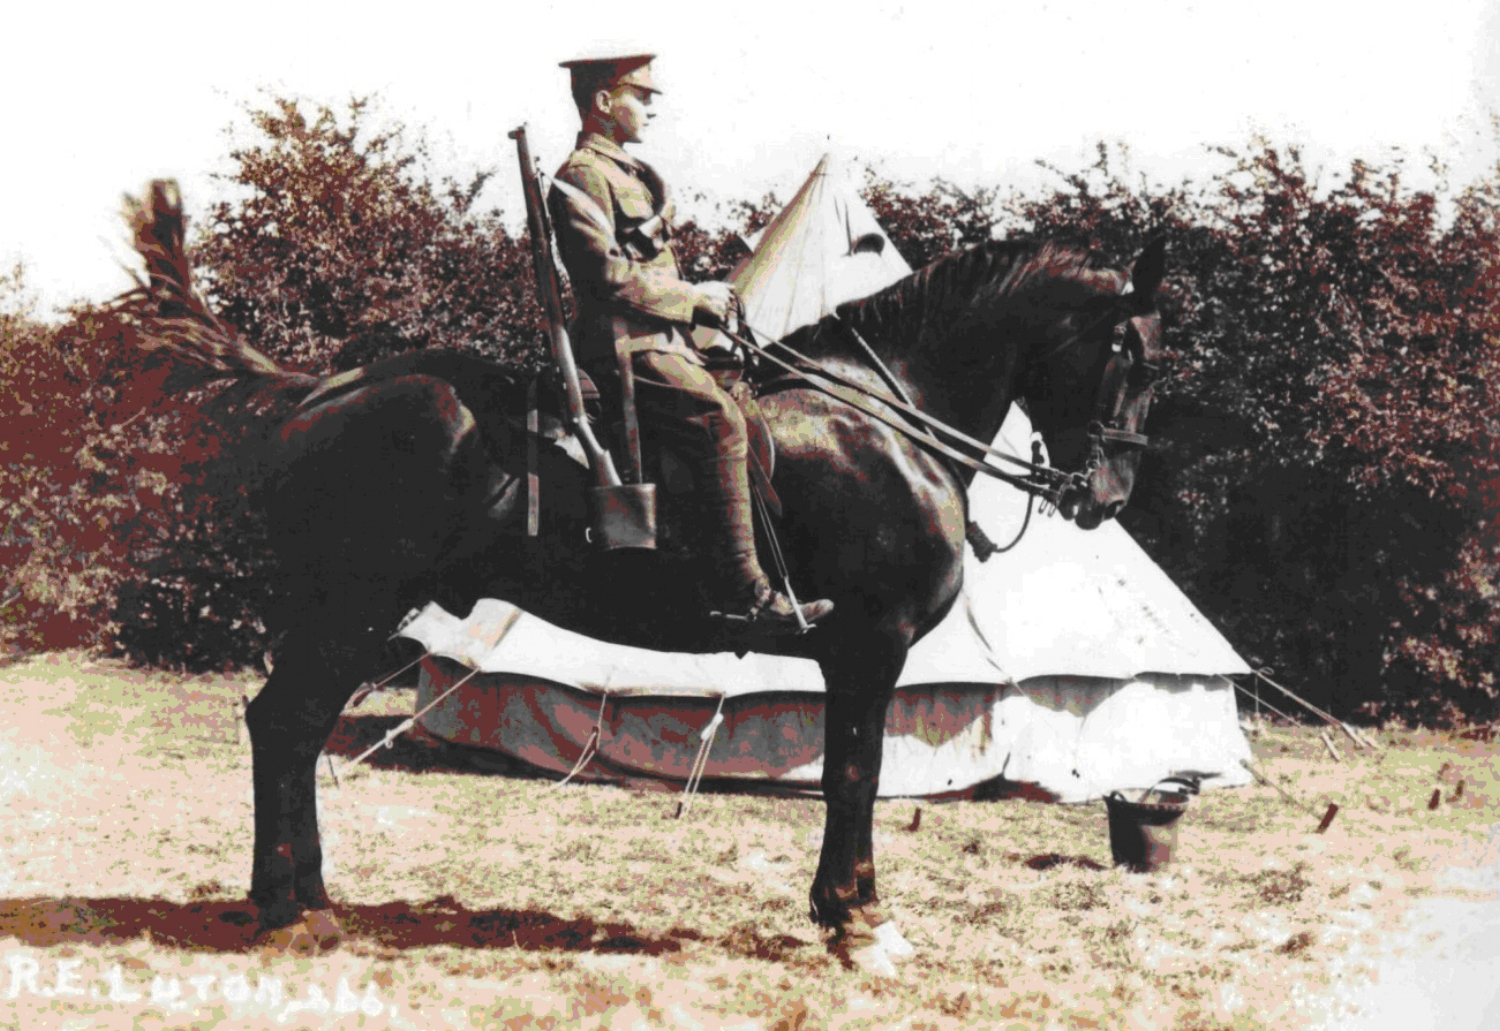 Harry Penton mounted on a dray horse